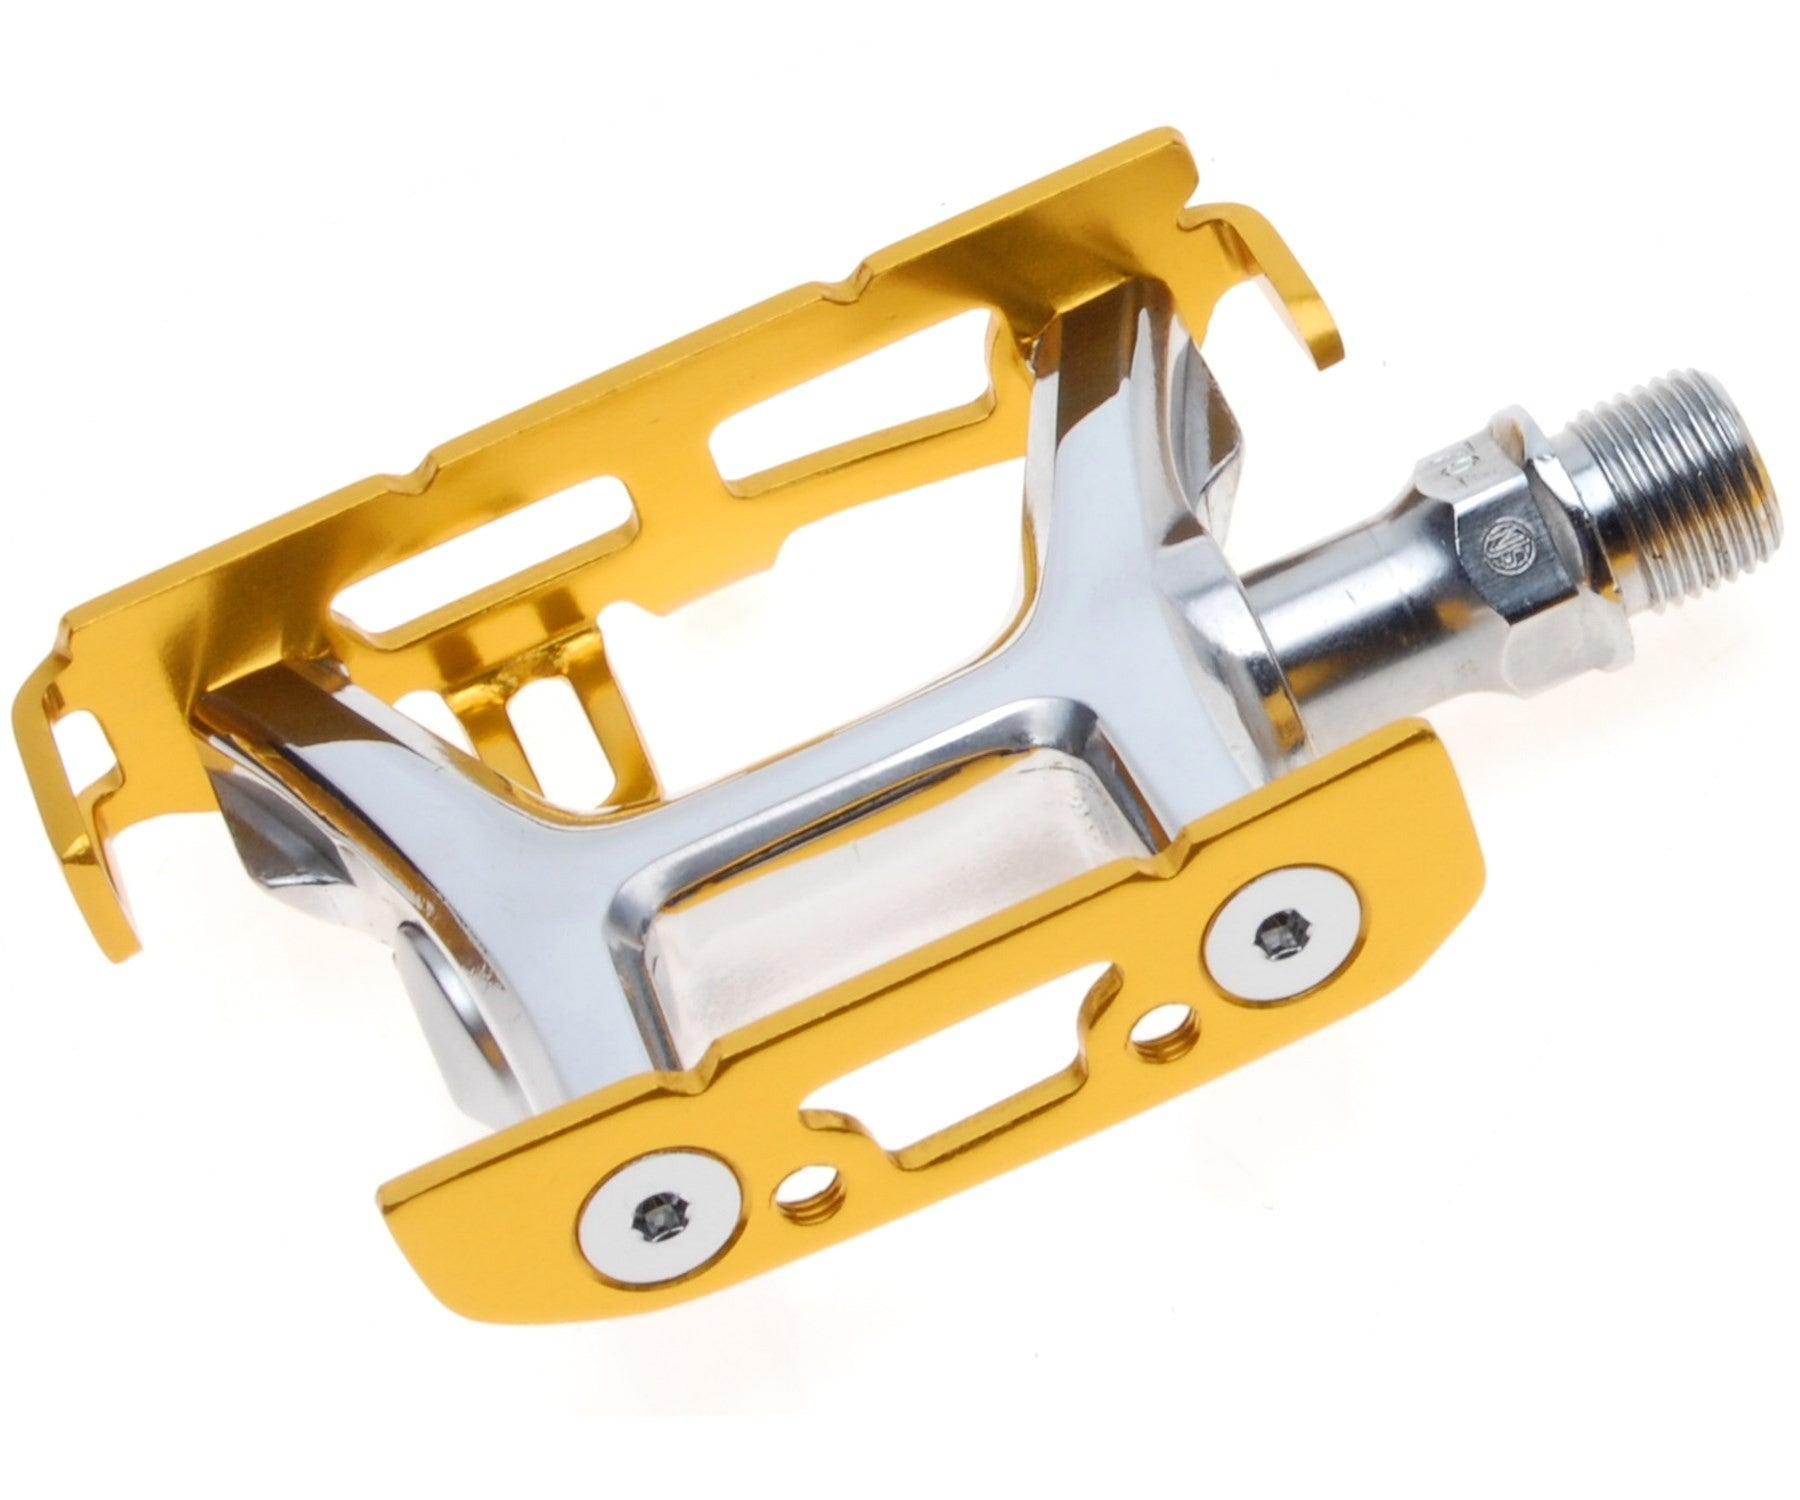 MKS RX-1 NJS pedals - Retrogression